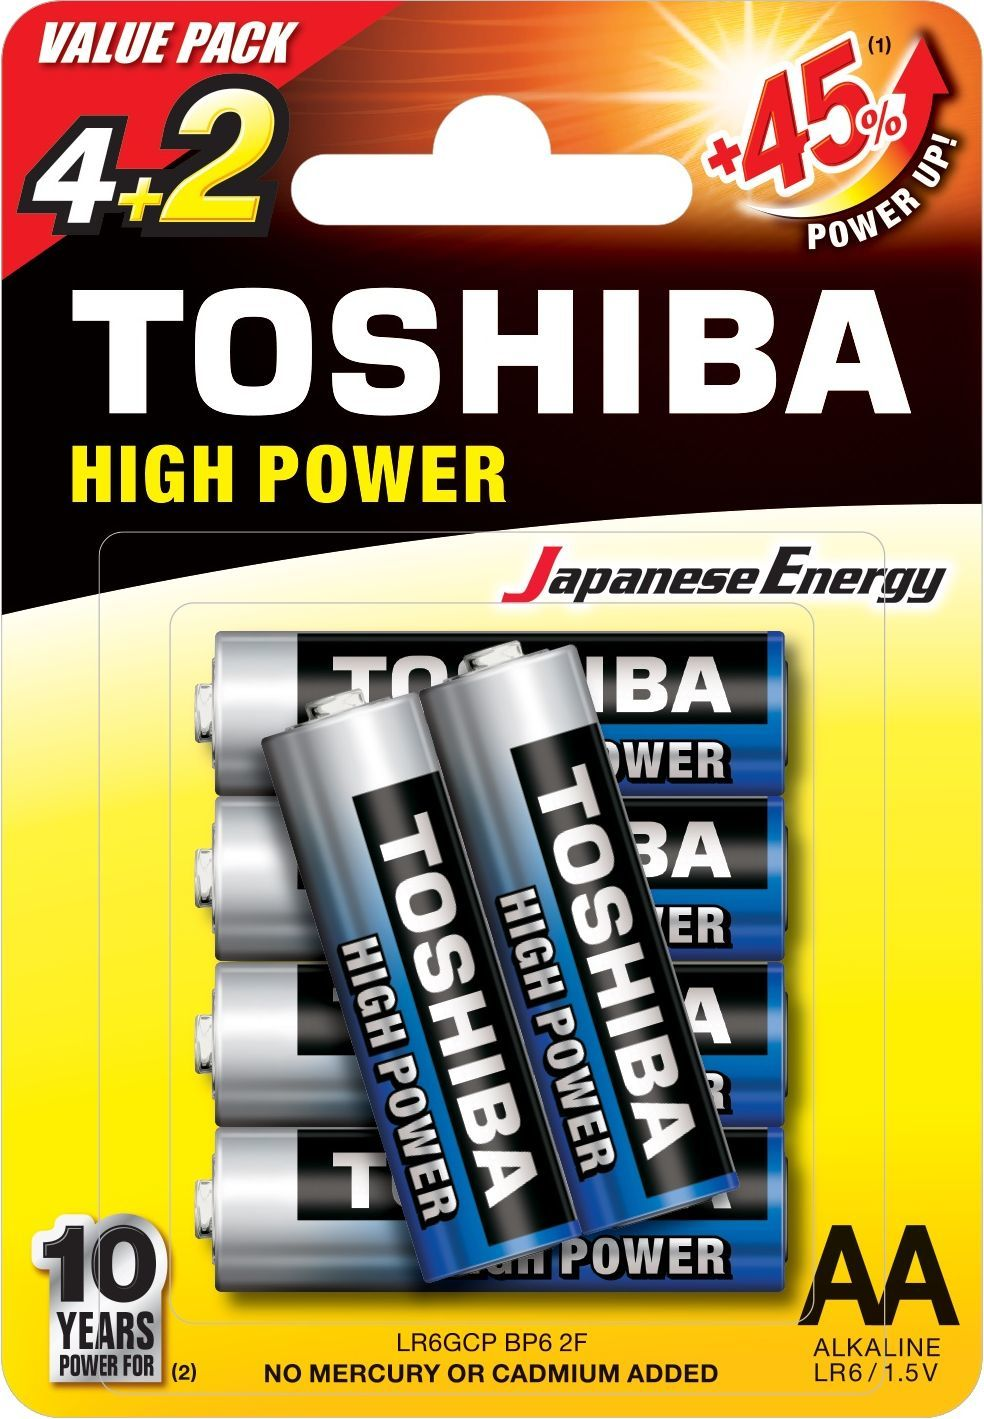 Toshiba Bateria High Power AA / R6 6szt. 1